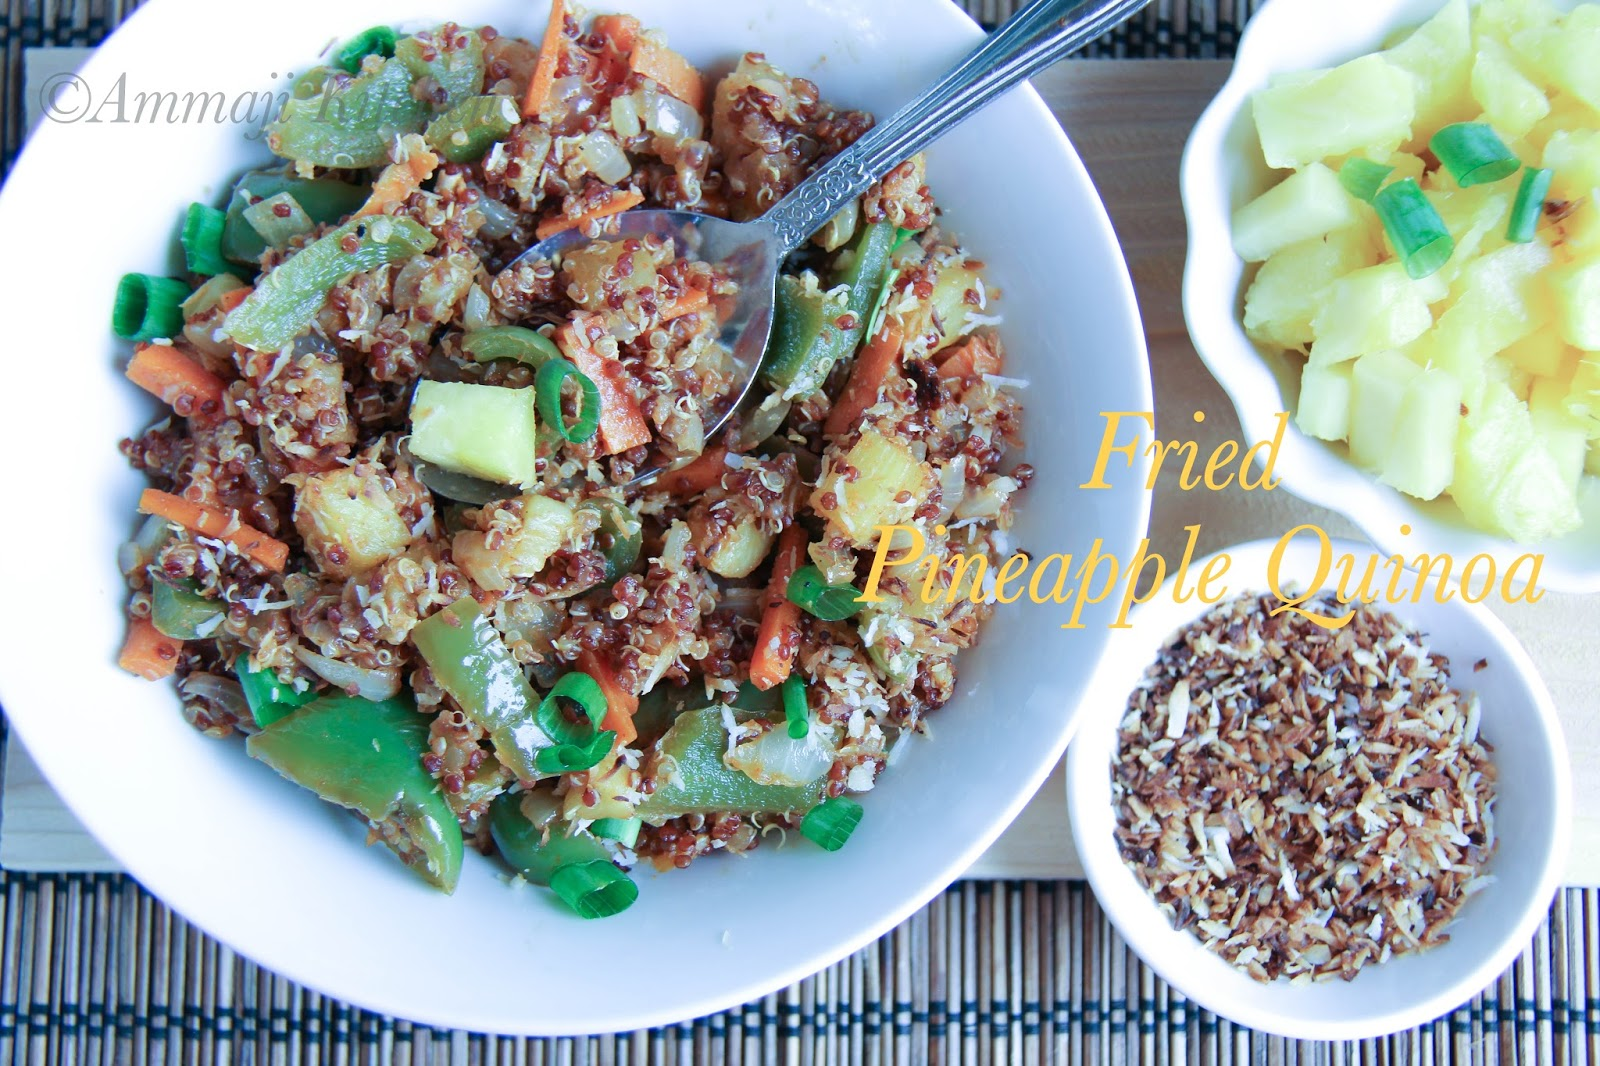 Fried Pineapple quinoa